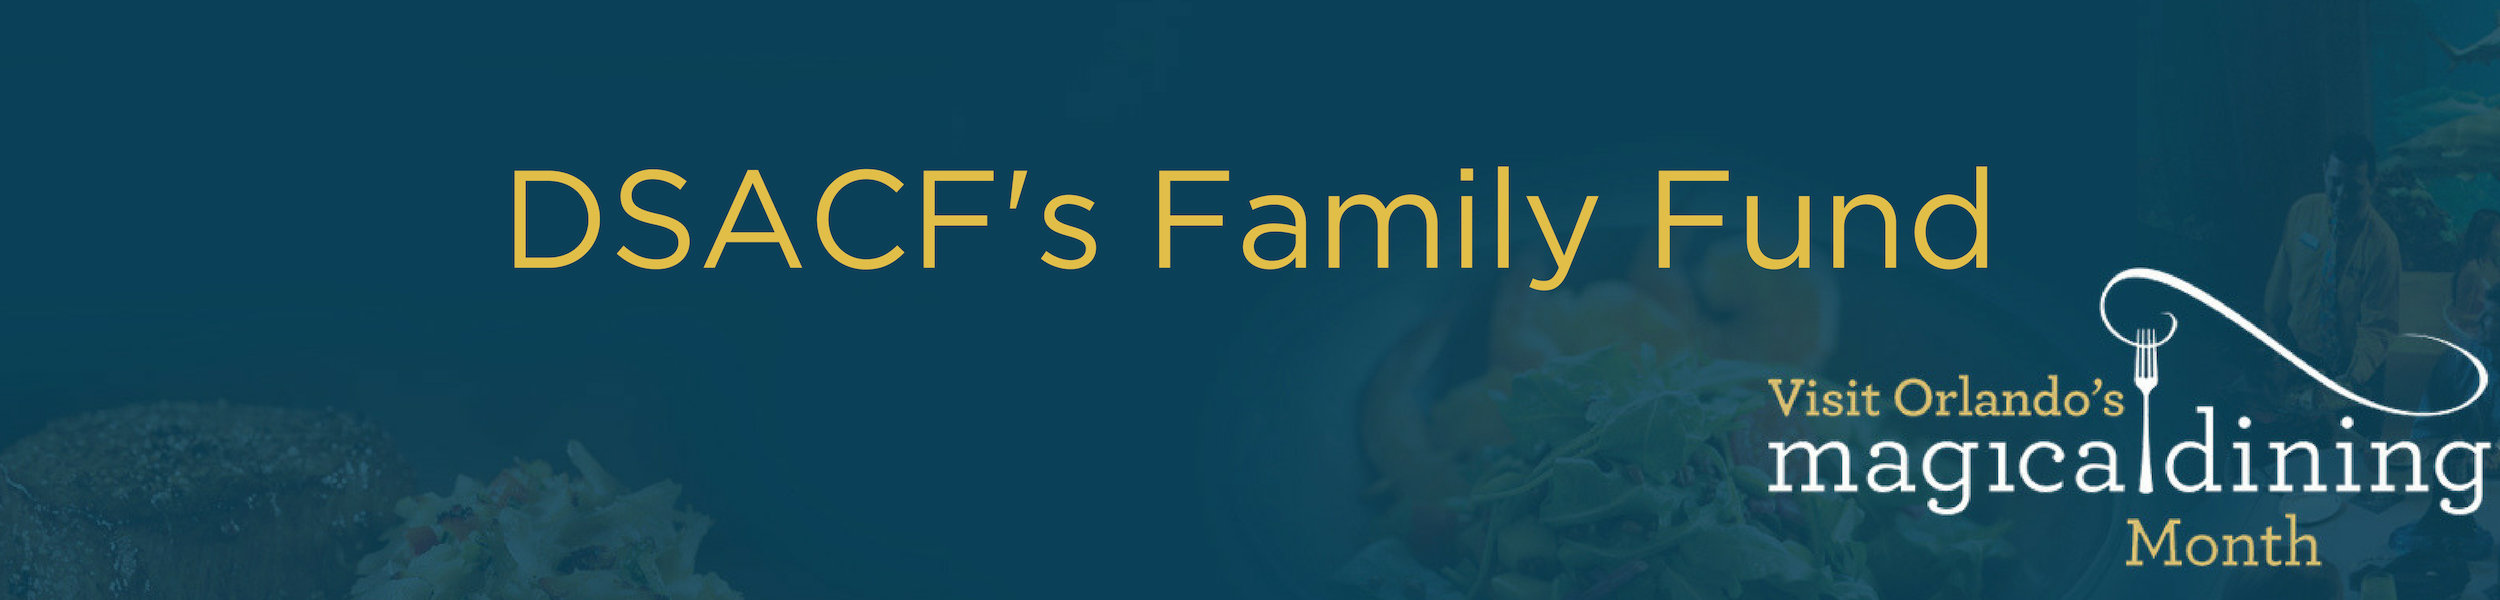 DSACF'S Family Fund.png